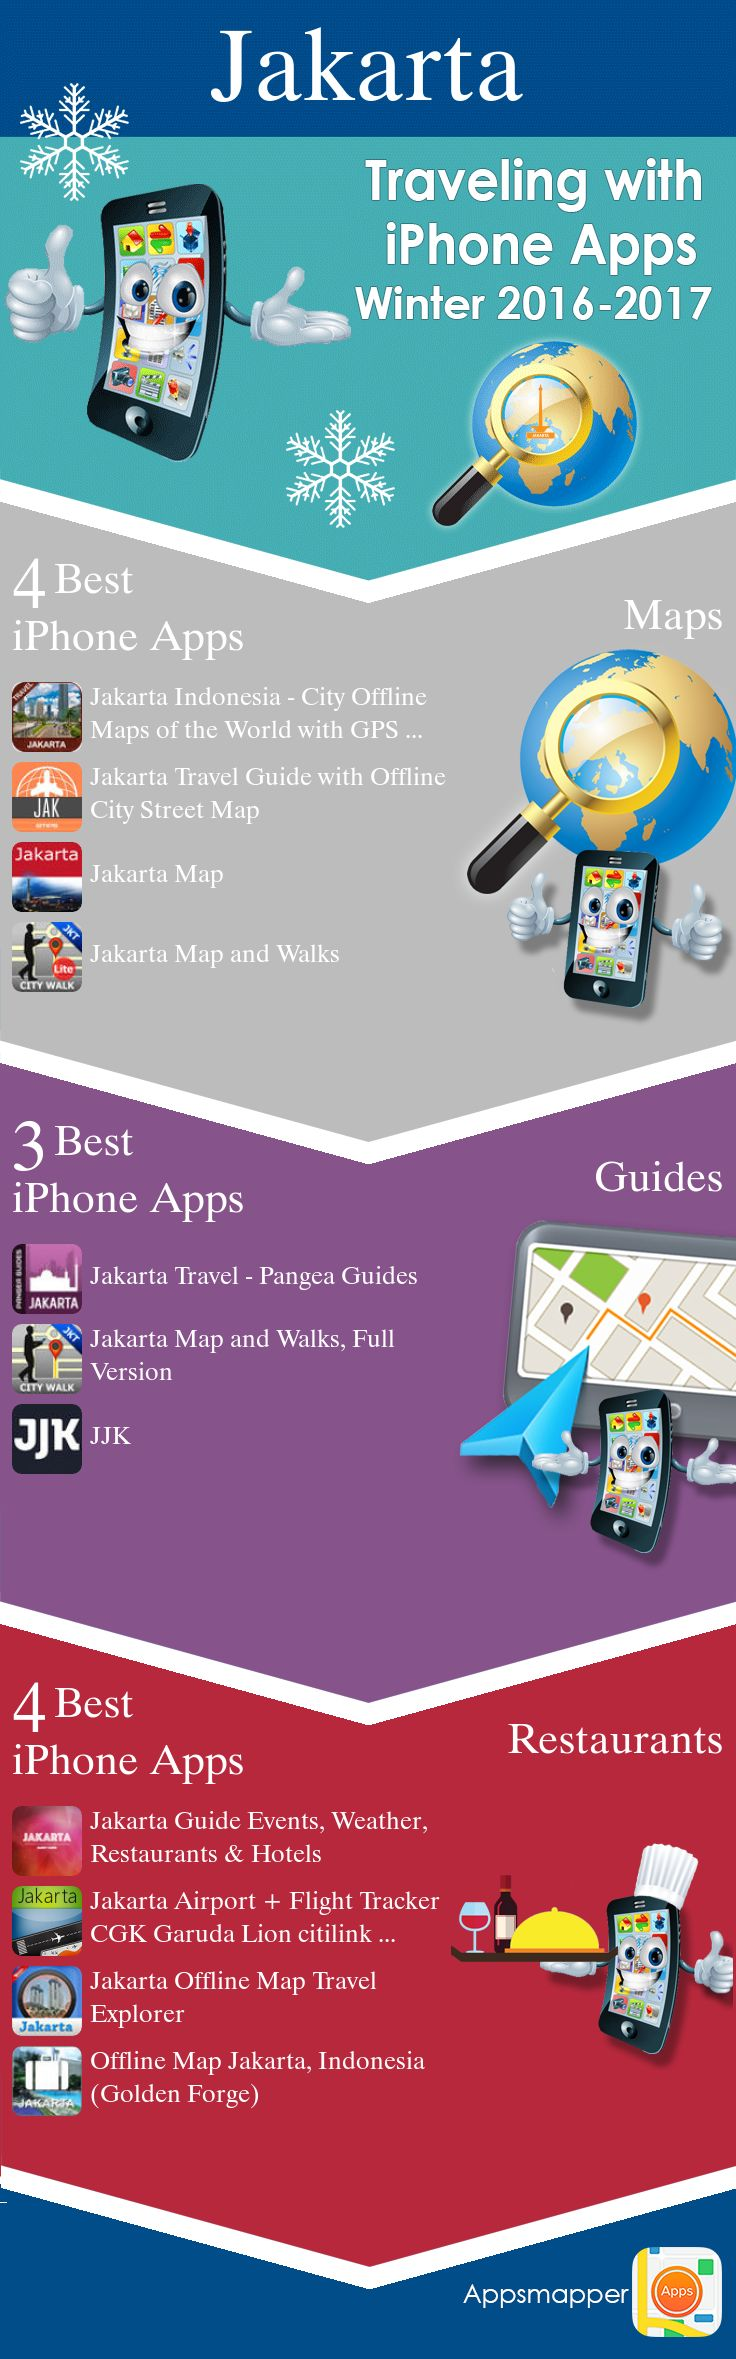 Jakarta iPhone apps: Travel Guides, Maps, Transportation, Biking, Museums, Parking, Sport and apps for Students.